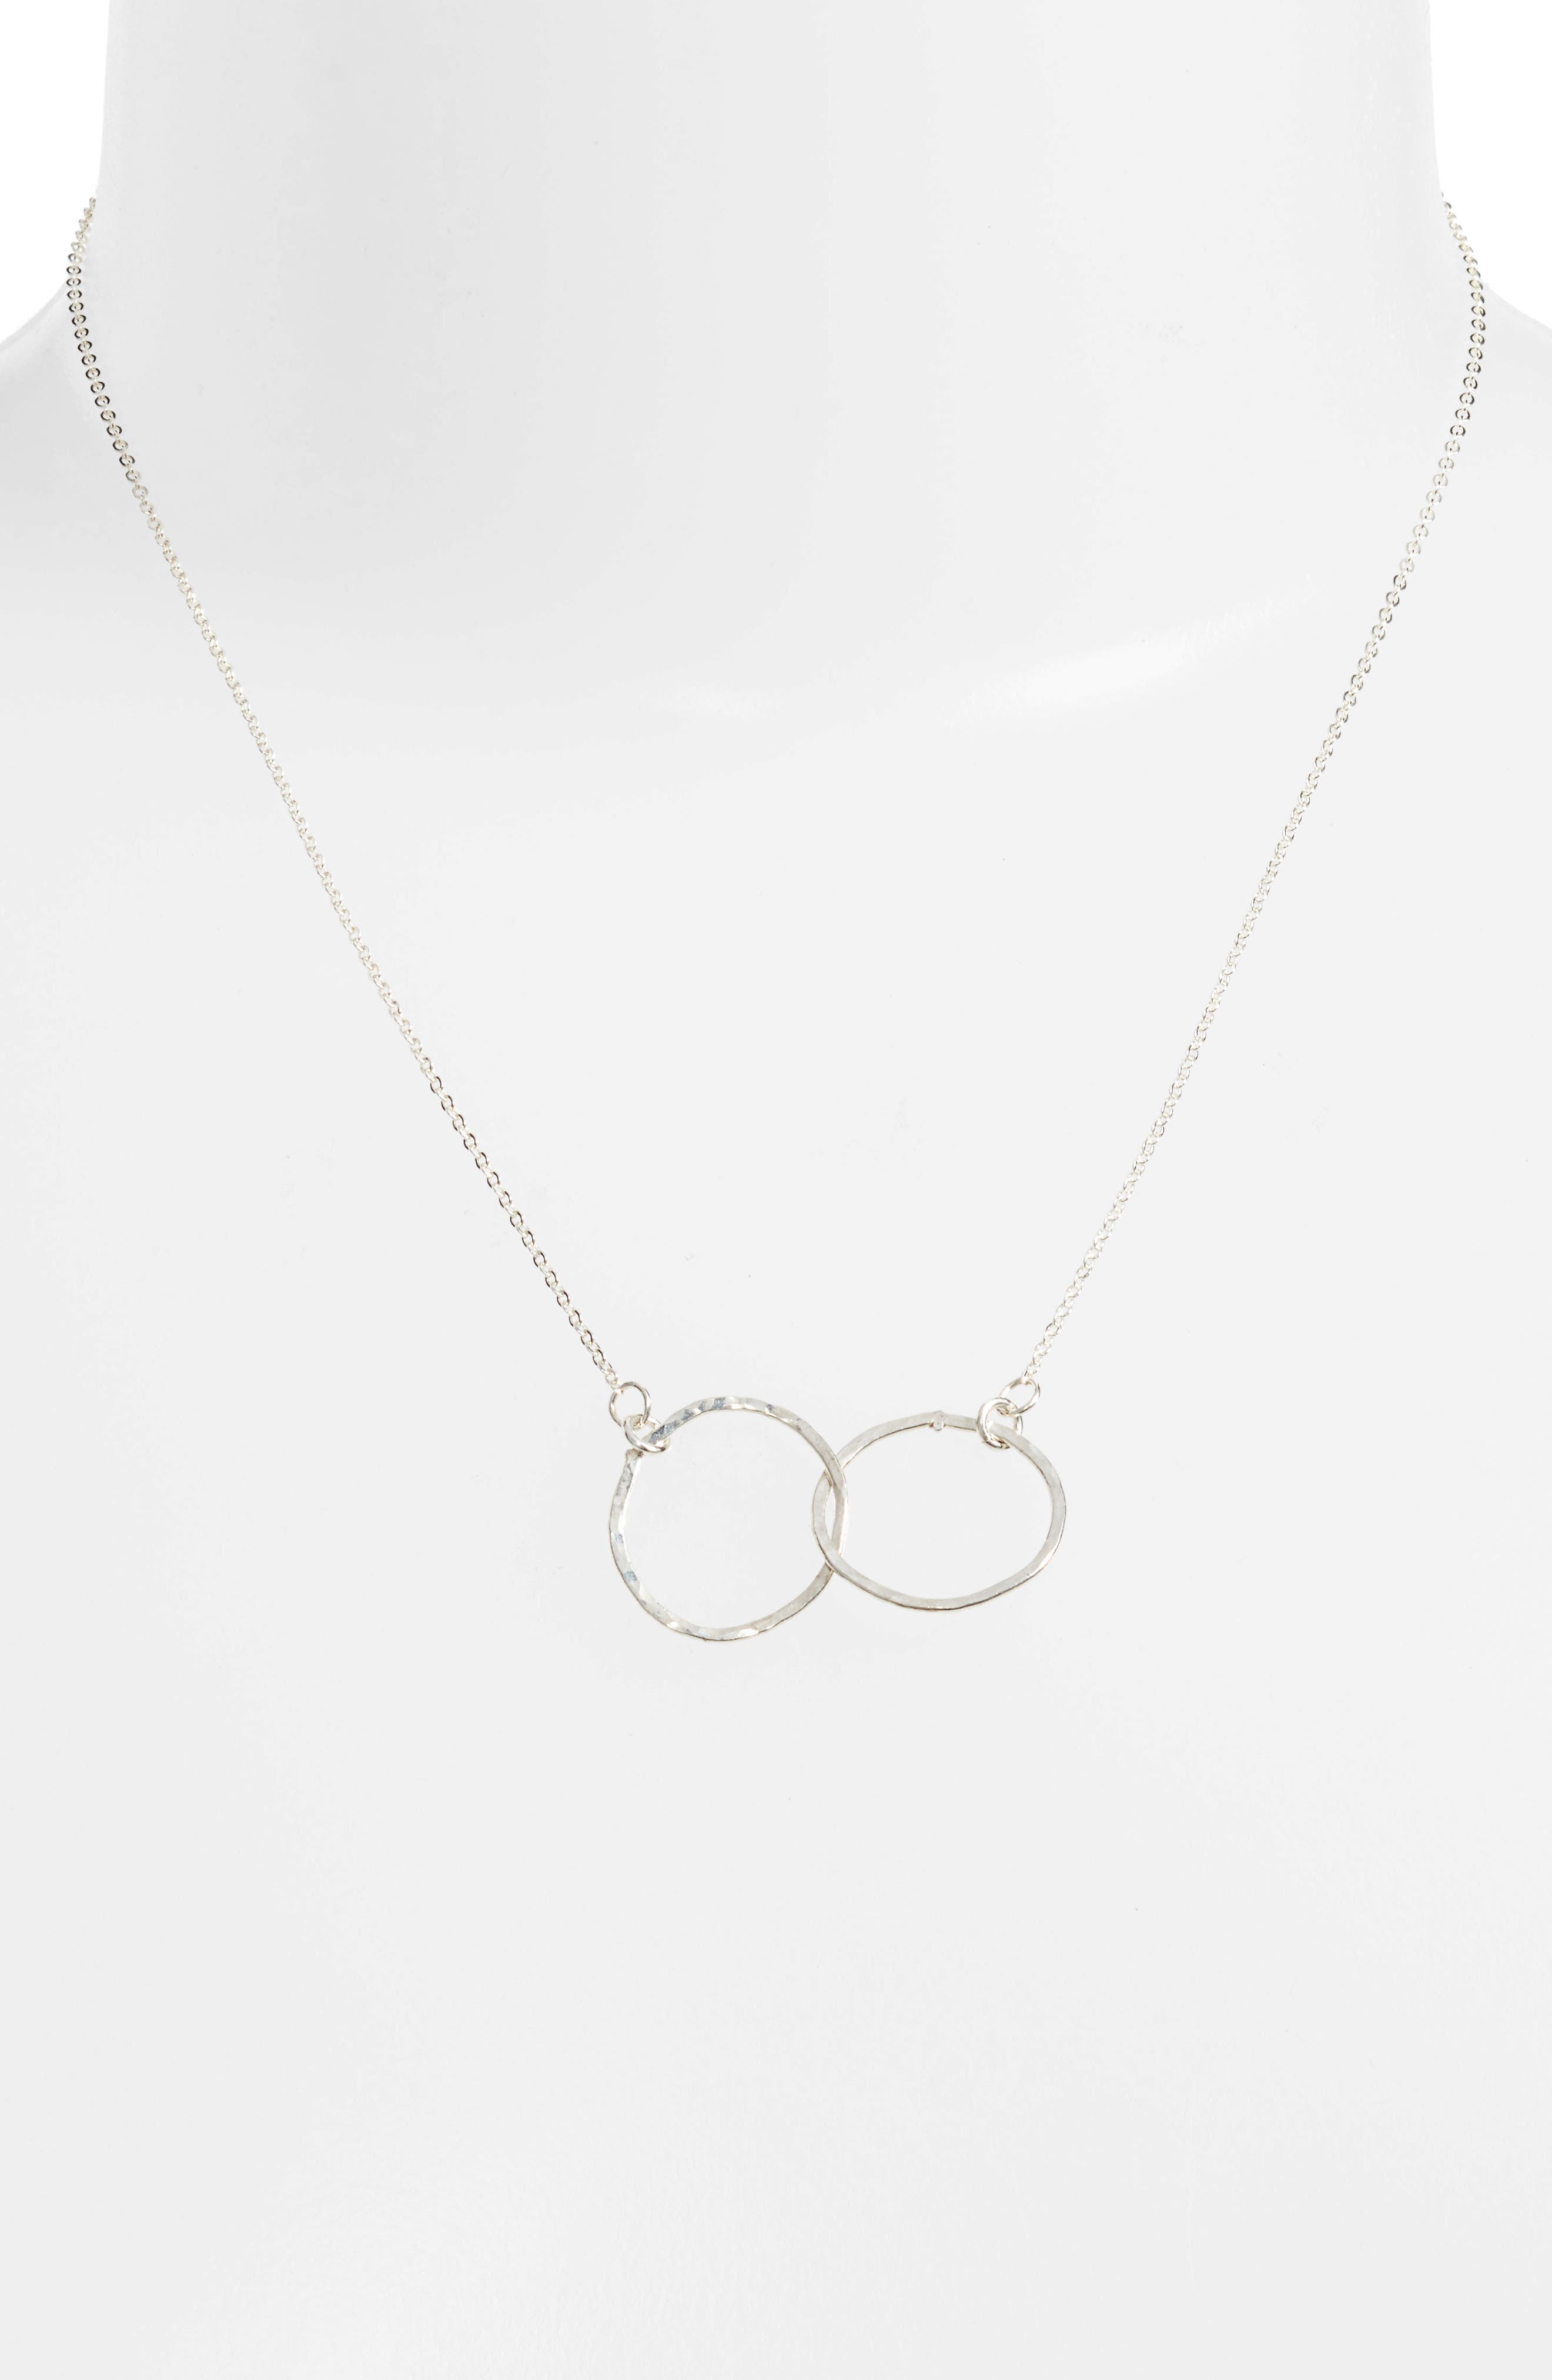 Lucky Eternity Necklace,                         Main,                         color, Silver